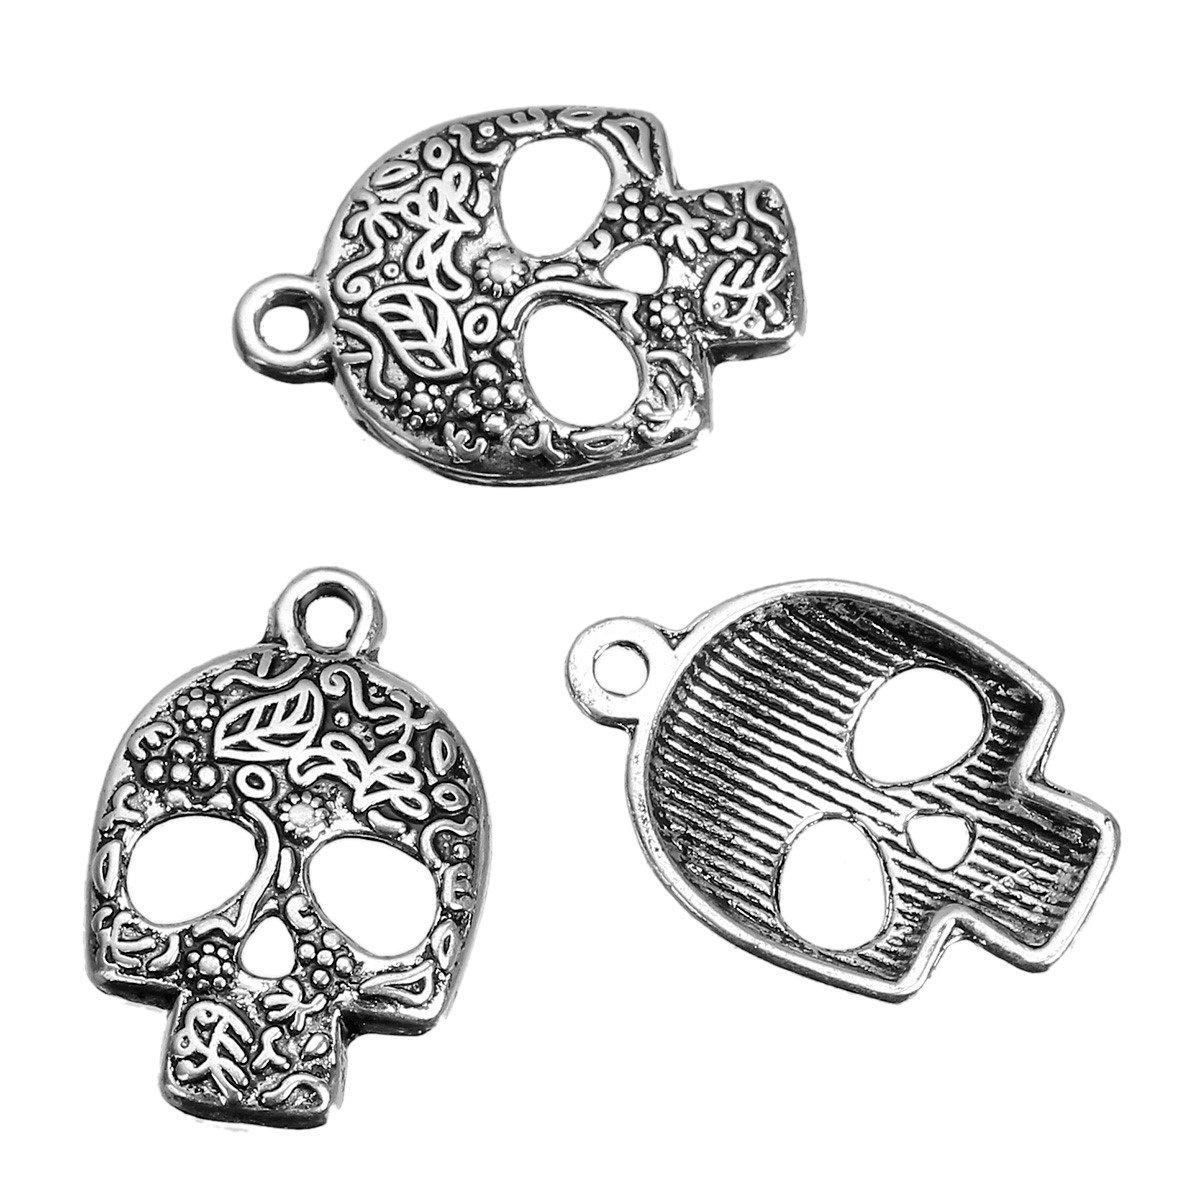 10 x Tibetan Silver SUGAR SKULL HALLOWEEN DAY OF THE DEAD Charms Pendants Beads Pink Cat Charms